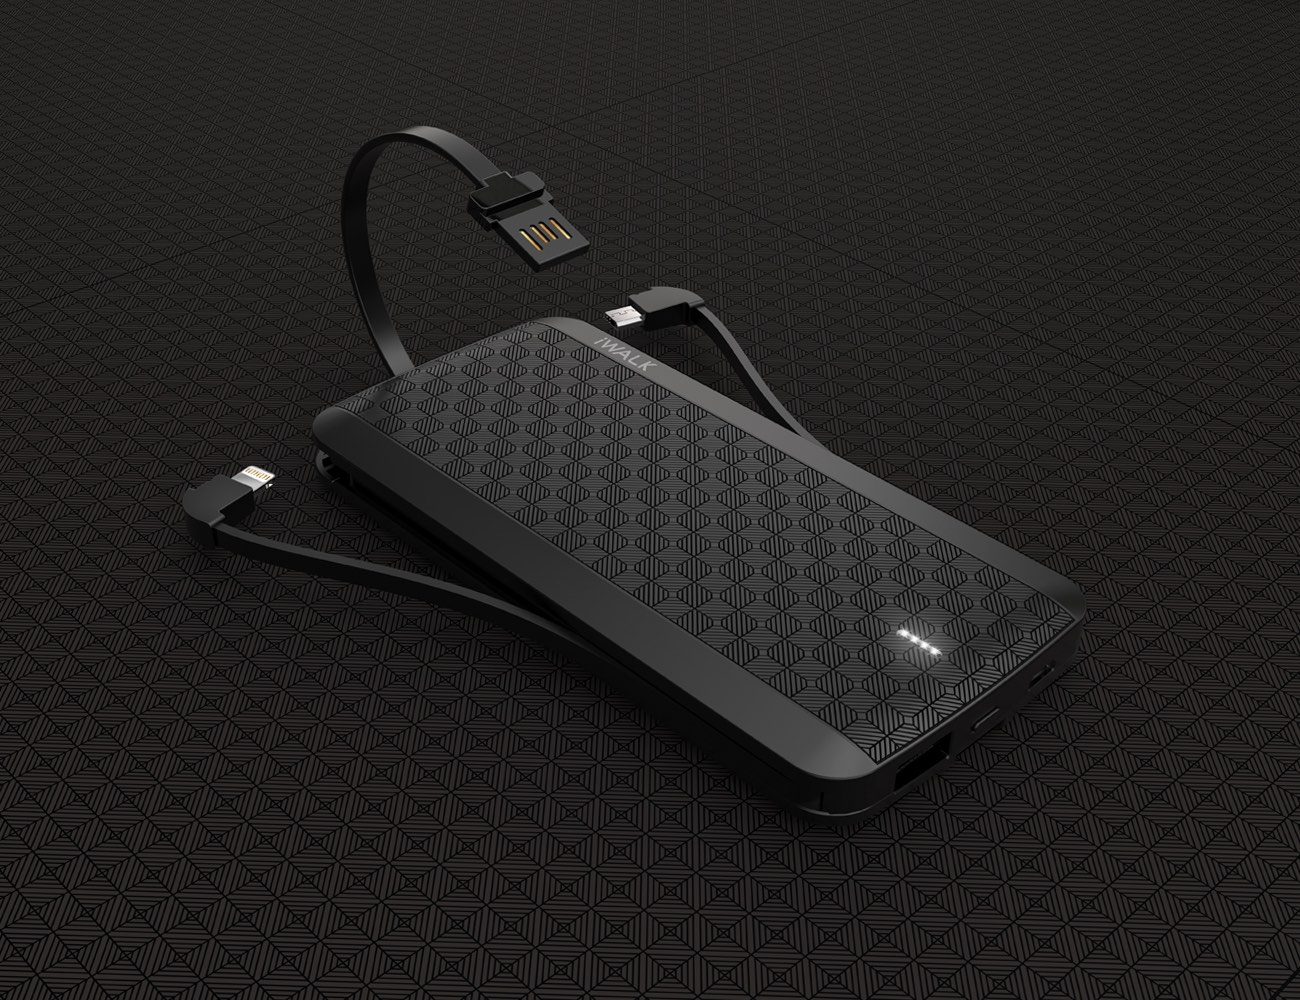 IWalk+Scorpion+Ultra+Slim+Power+Bank+With+Built+In+Cables